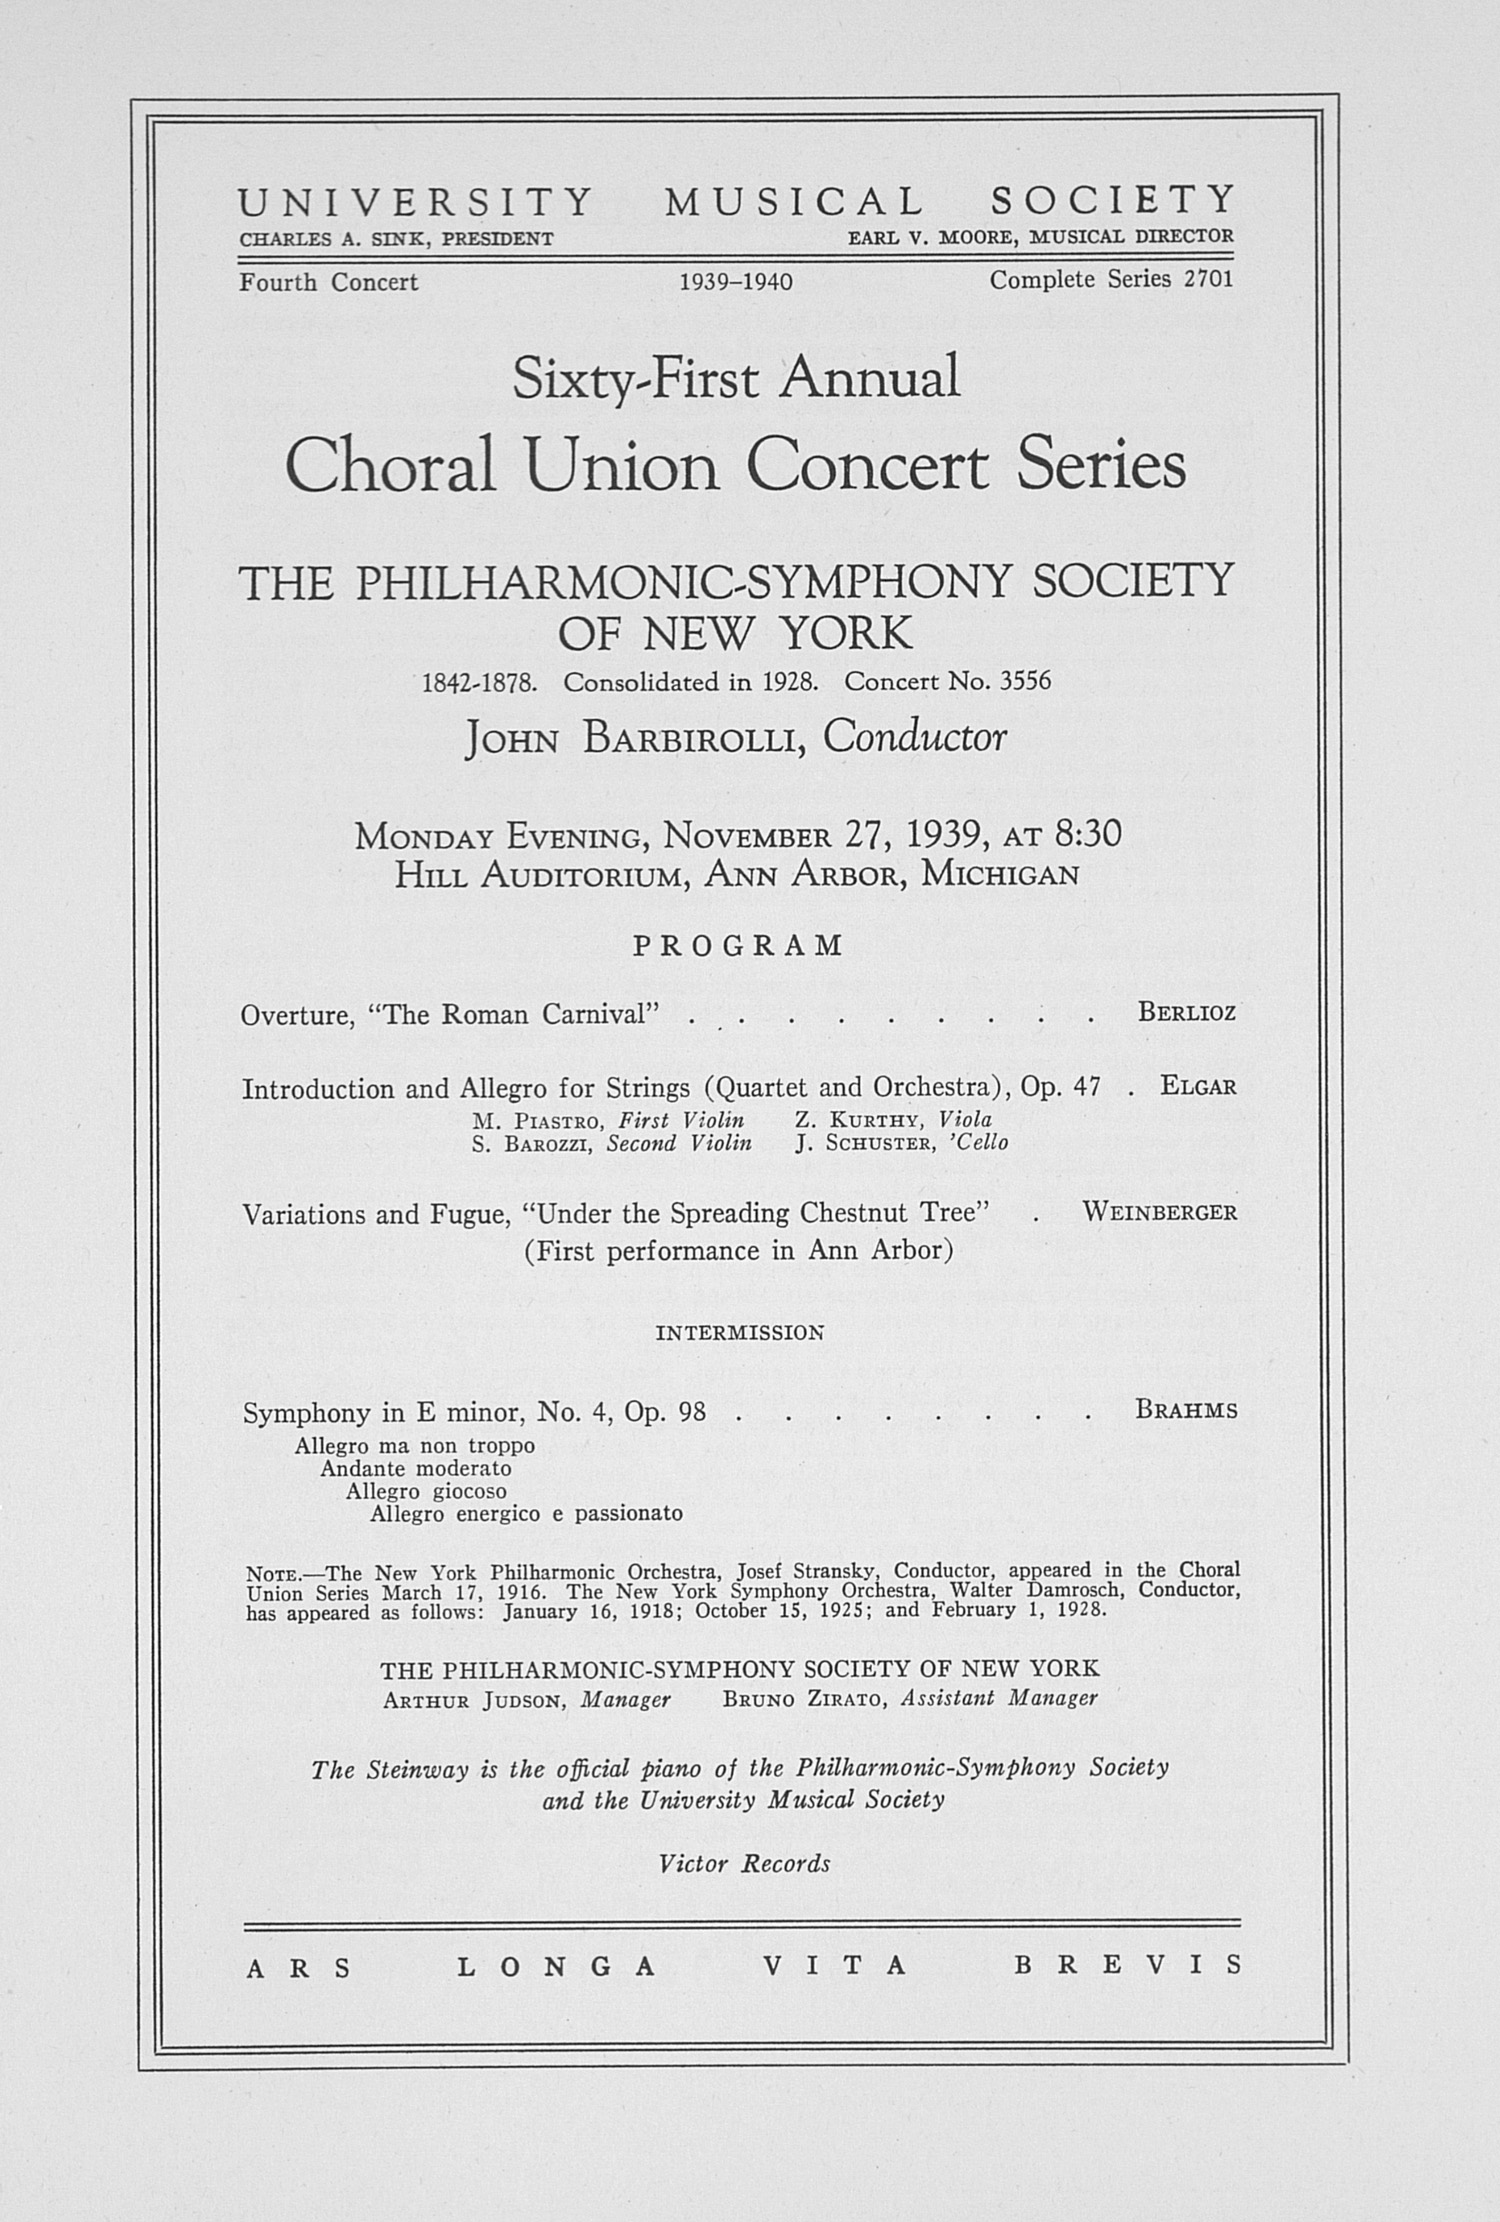 UMS Concert Program, November 27, 1939: Choral Union Concert Series -- John Barbirolli image